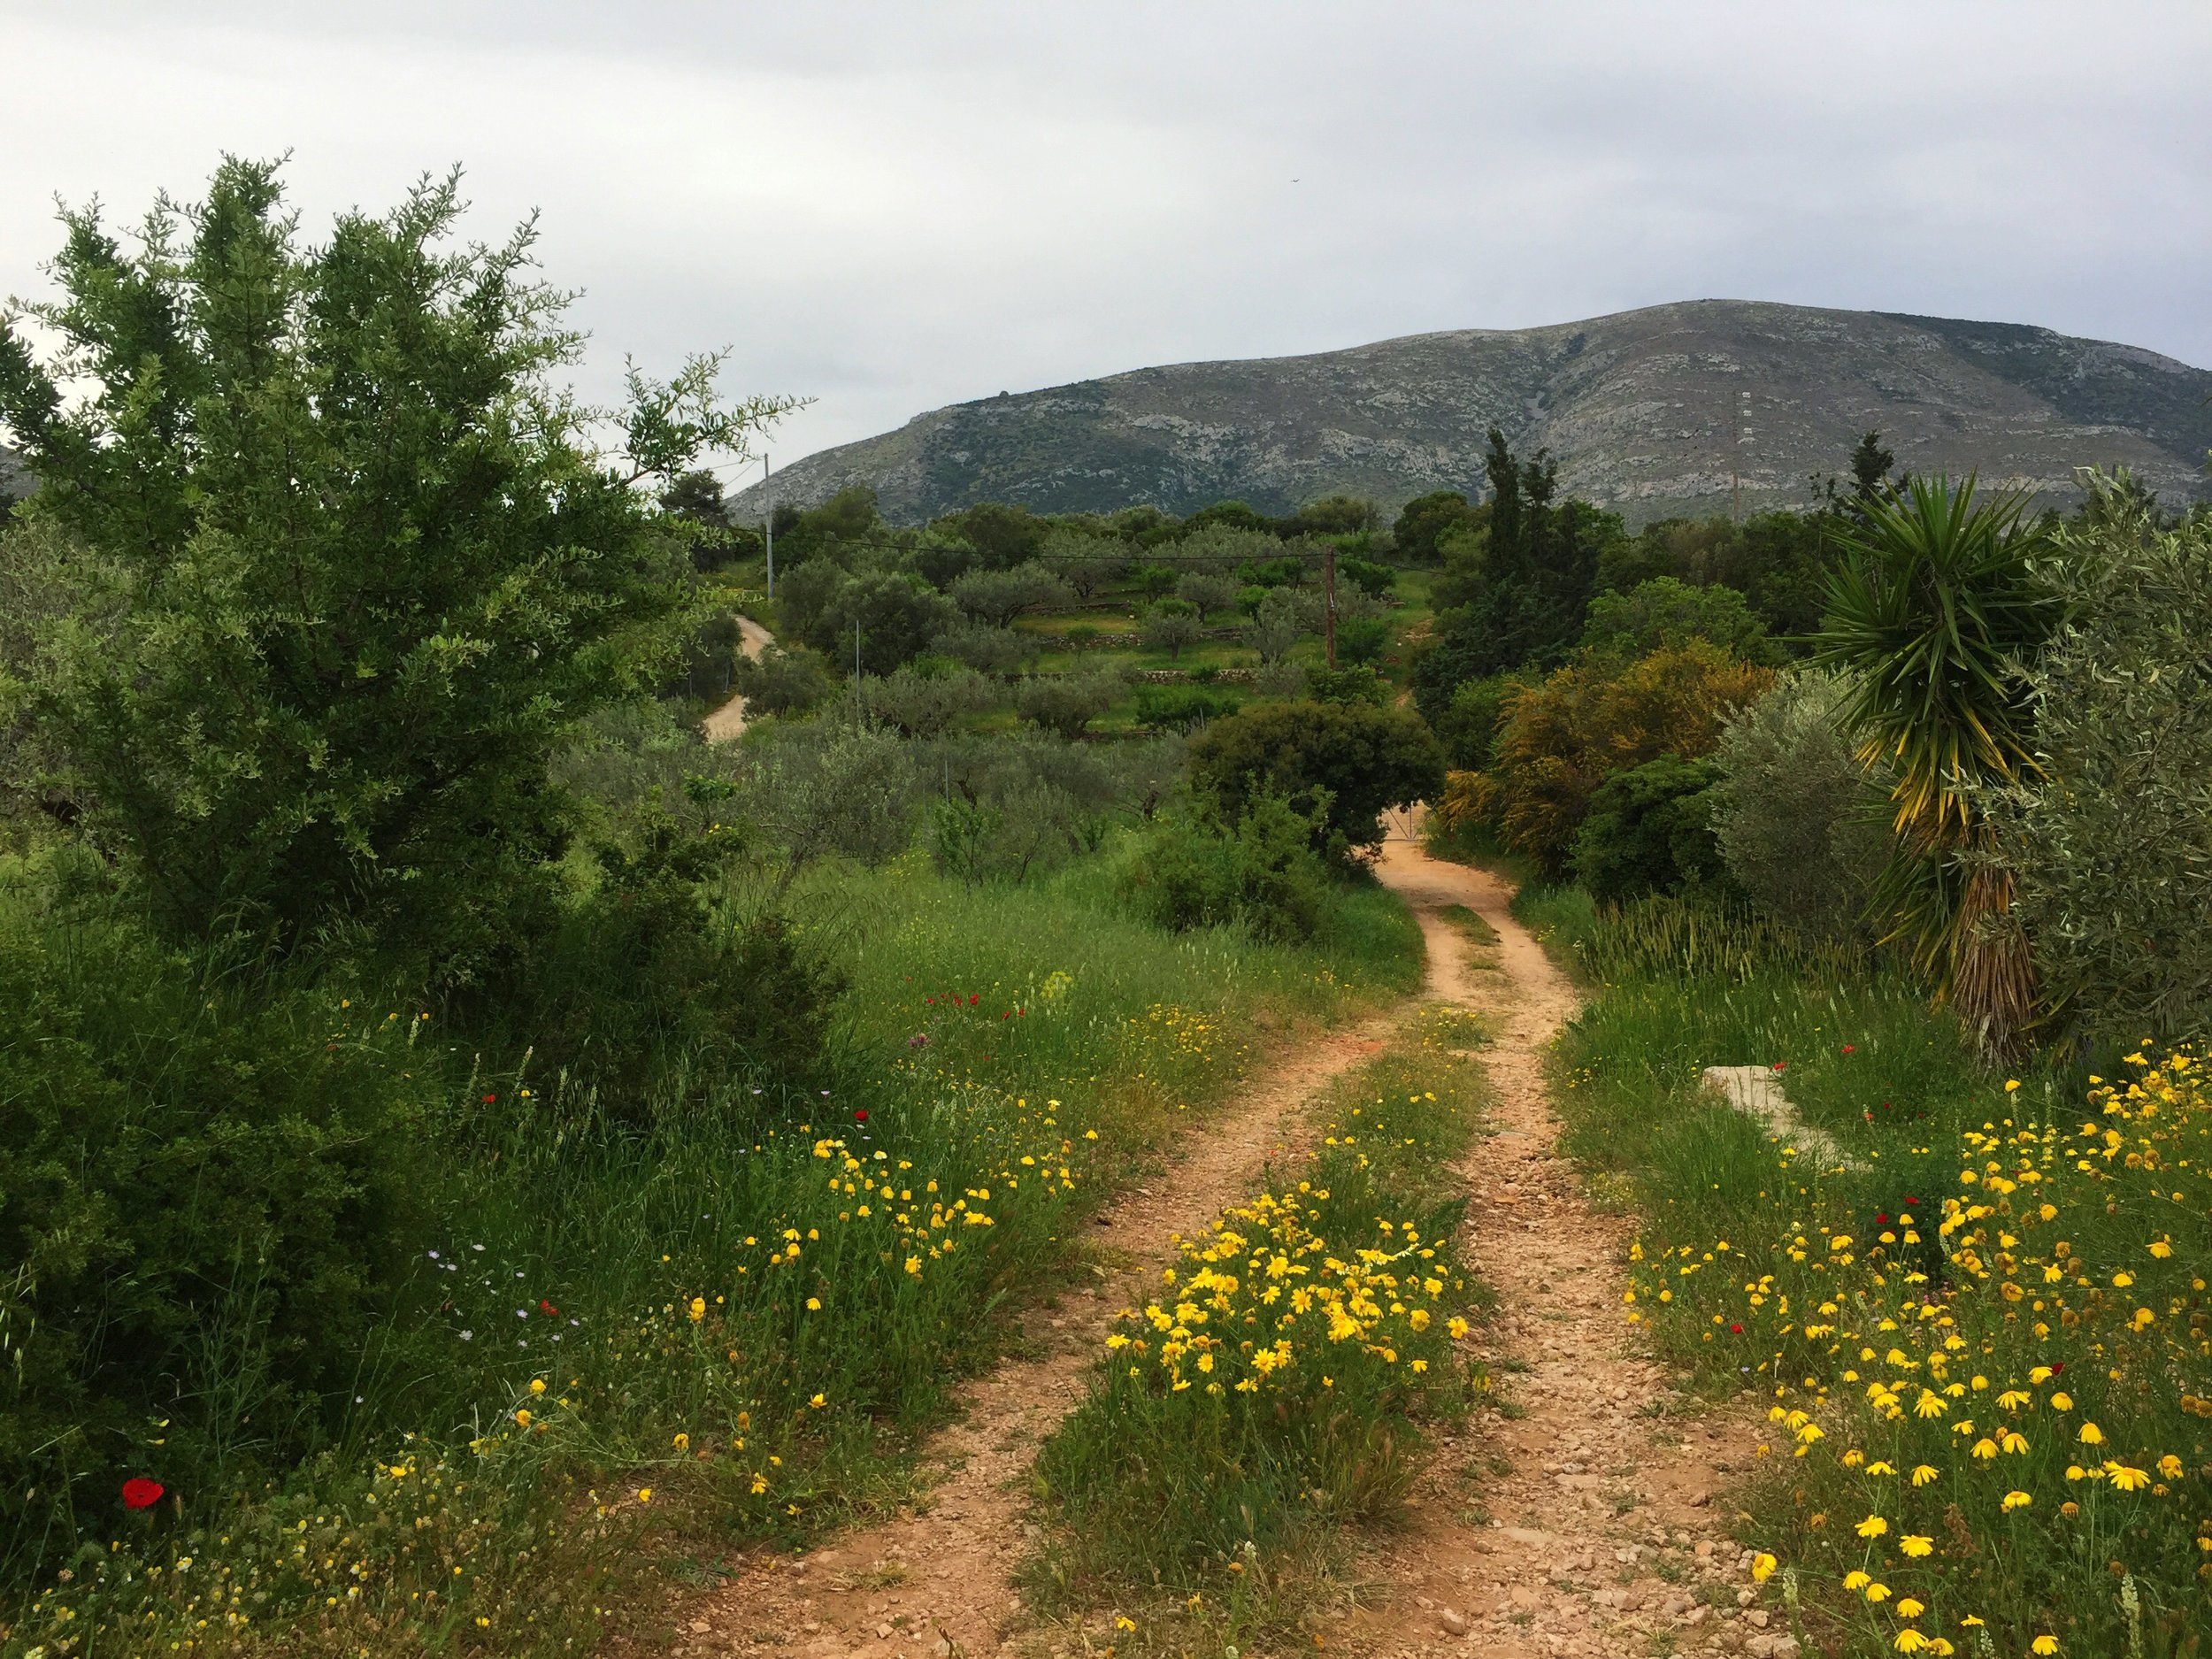 The women's walking are at the Vipassana centre in Markopoulo, Greece (a biodynamic farm).